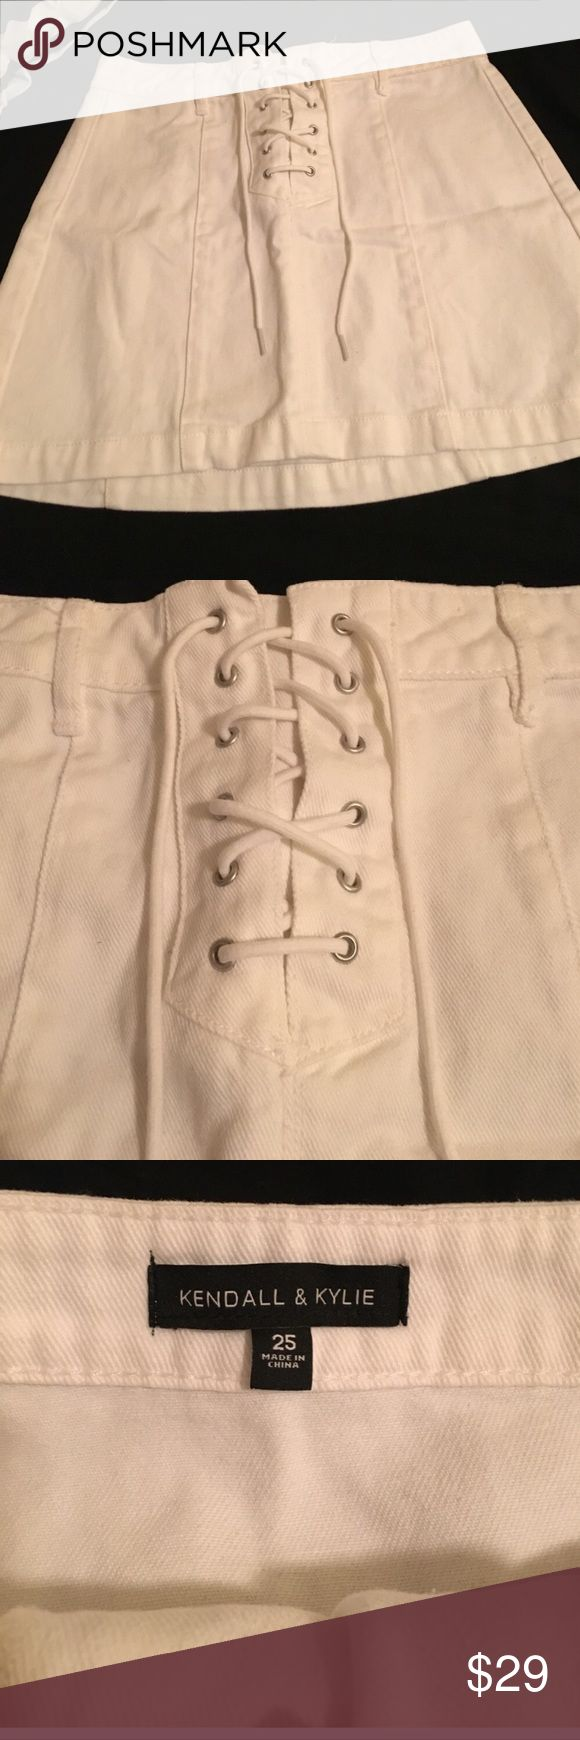 New Kendall & Kylie white lace up skirt! Sz 25 Cute trendy Kendall & Kylie white lace up skirt!! A summer must have!! Never worn! Size 25! Summer skirt; summer clothes are these best! Wear with sandals, booties, boots or tennis shoes! Kendall & Kylie Skirts Mini